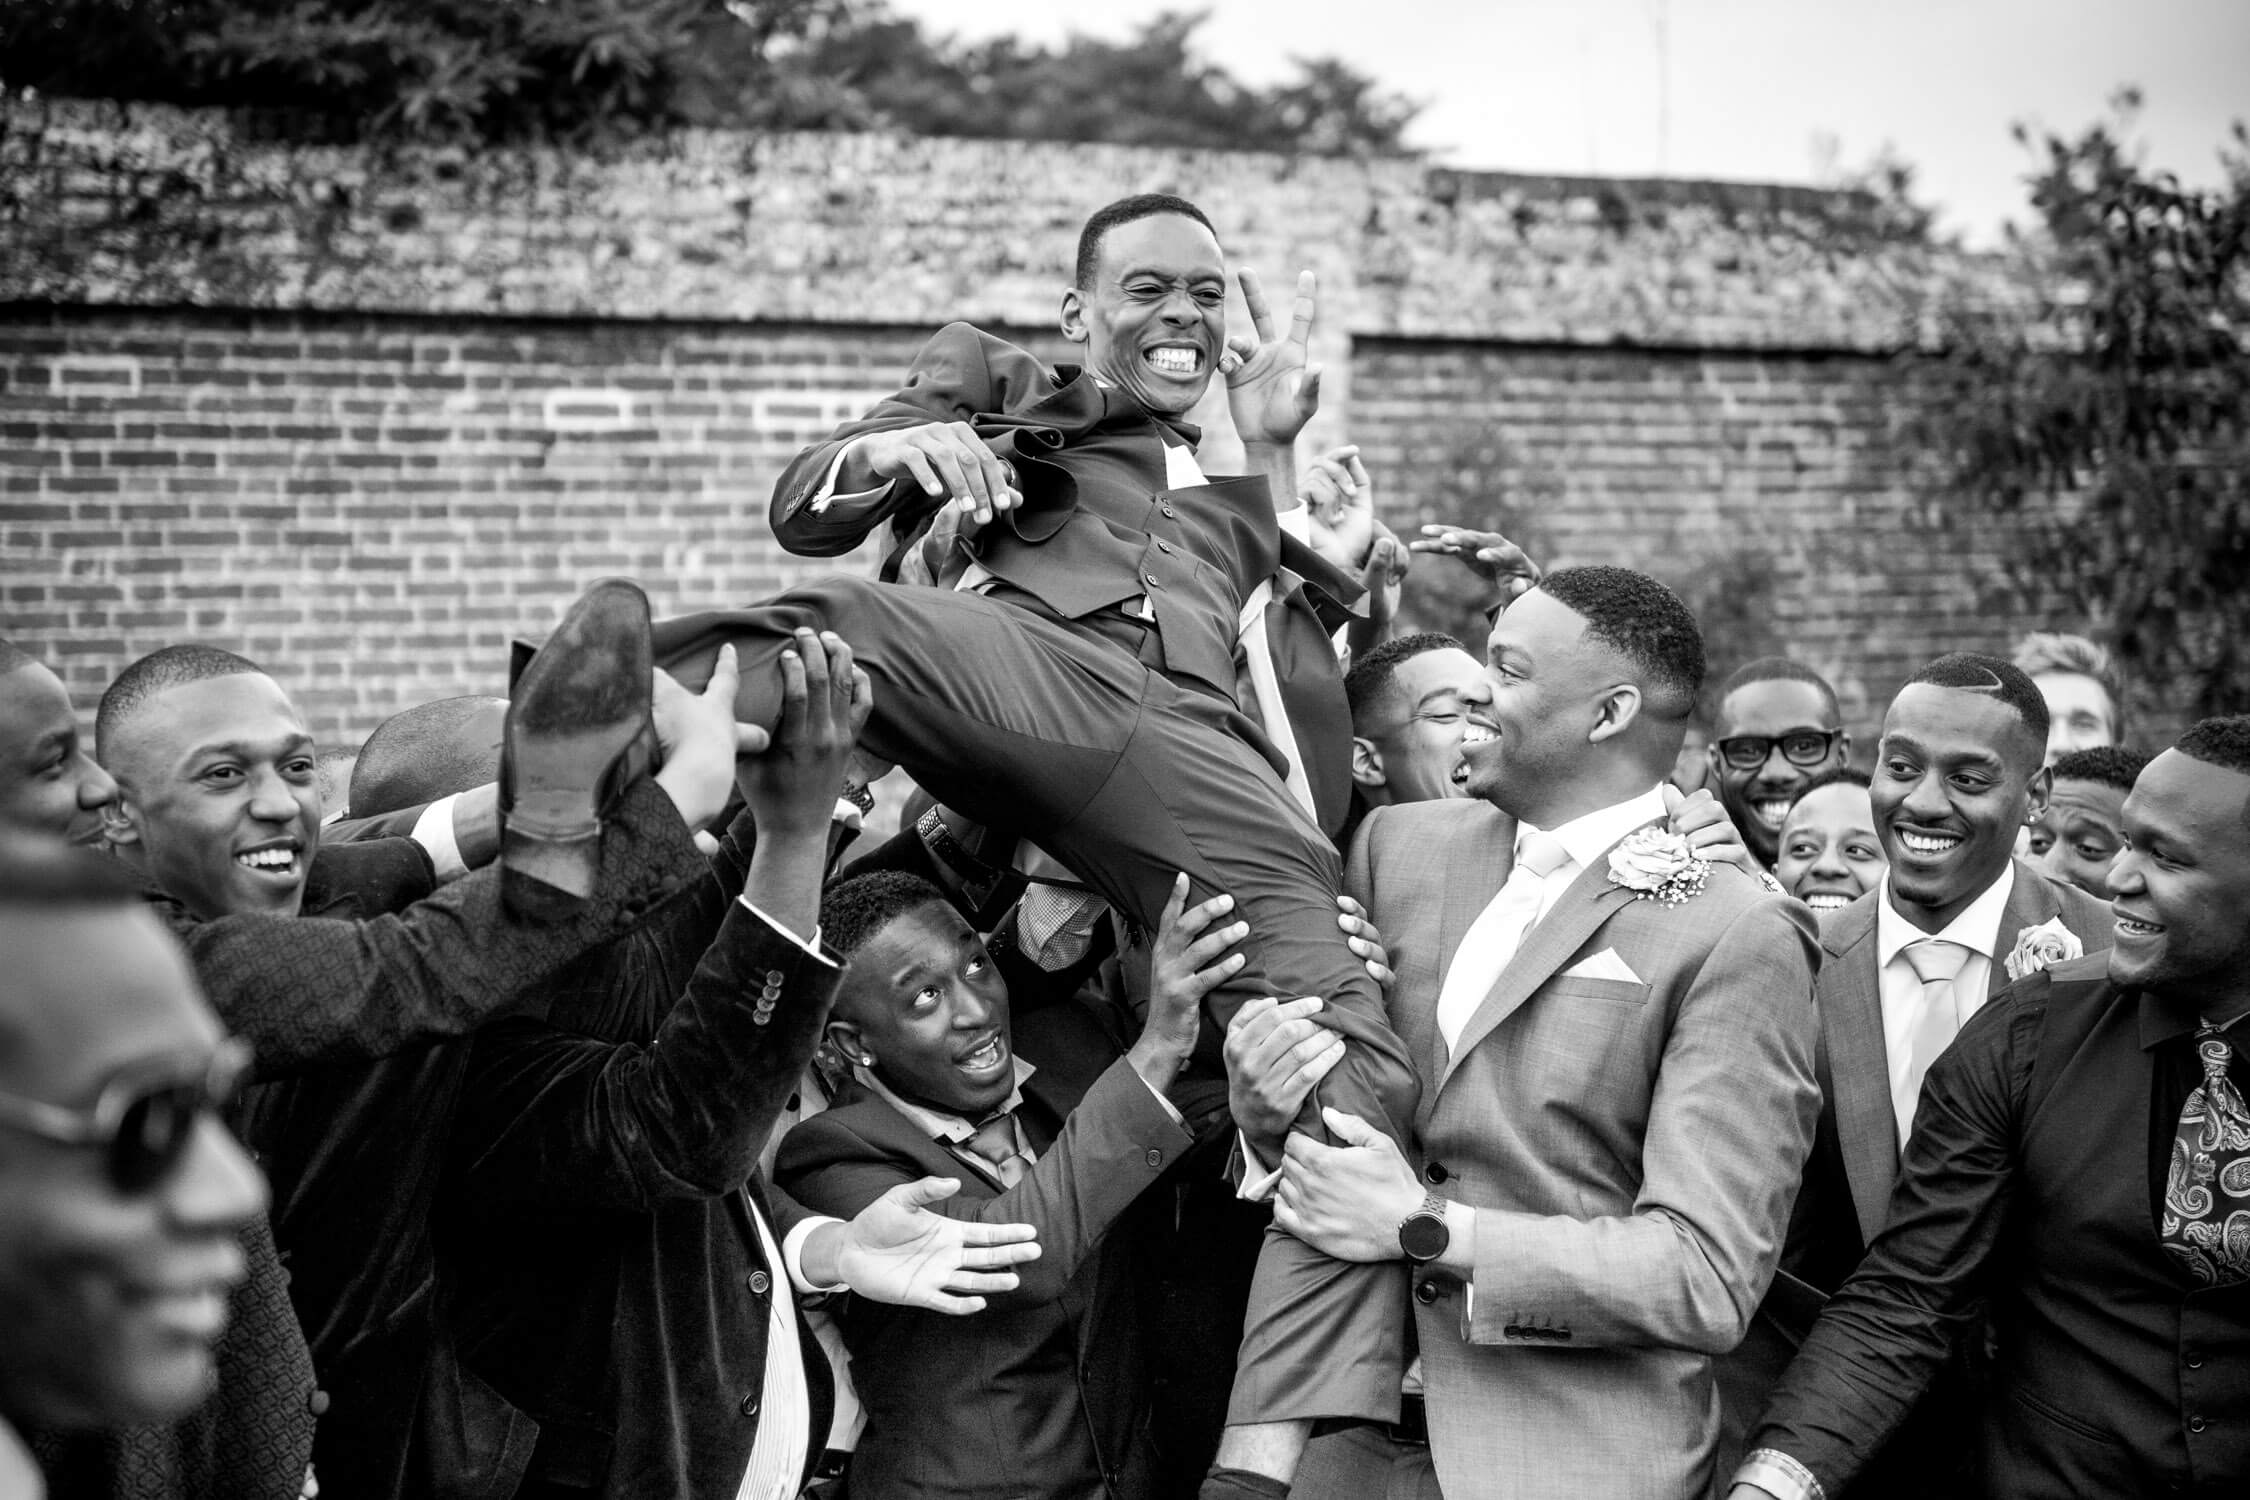 Groom being lifted in the air